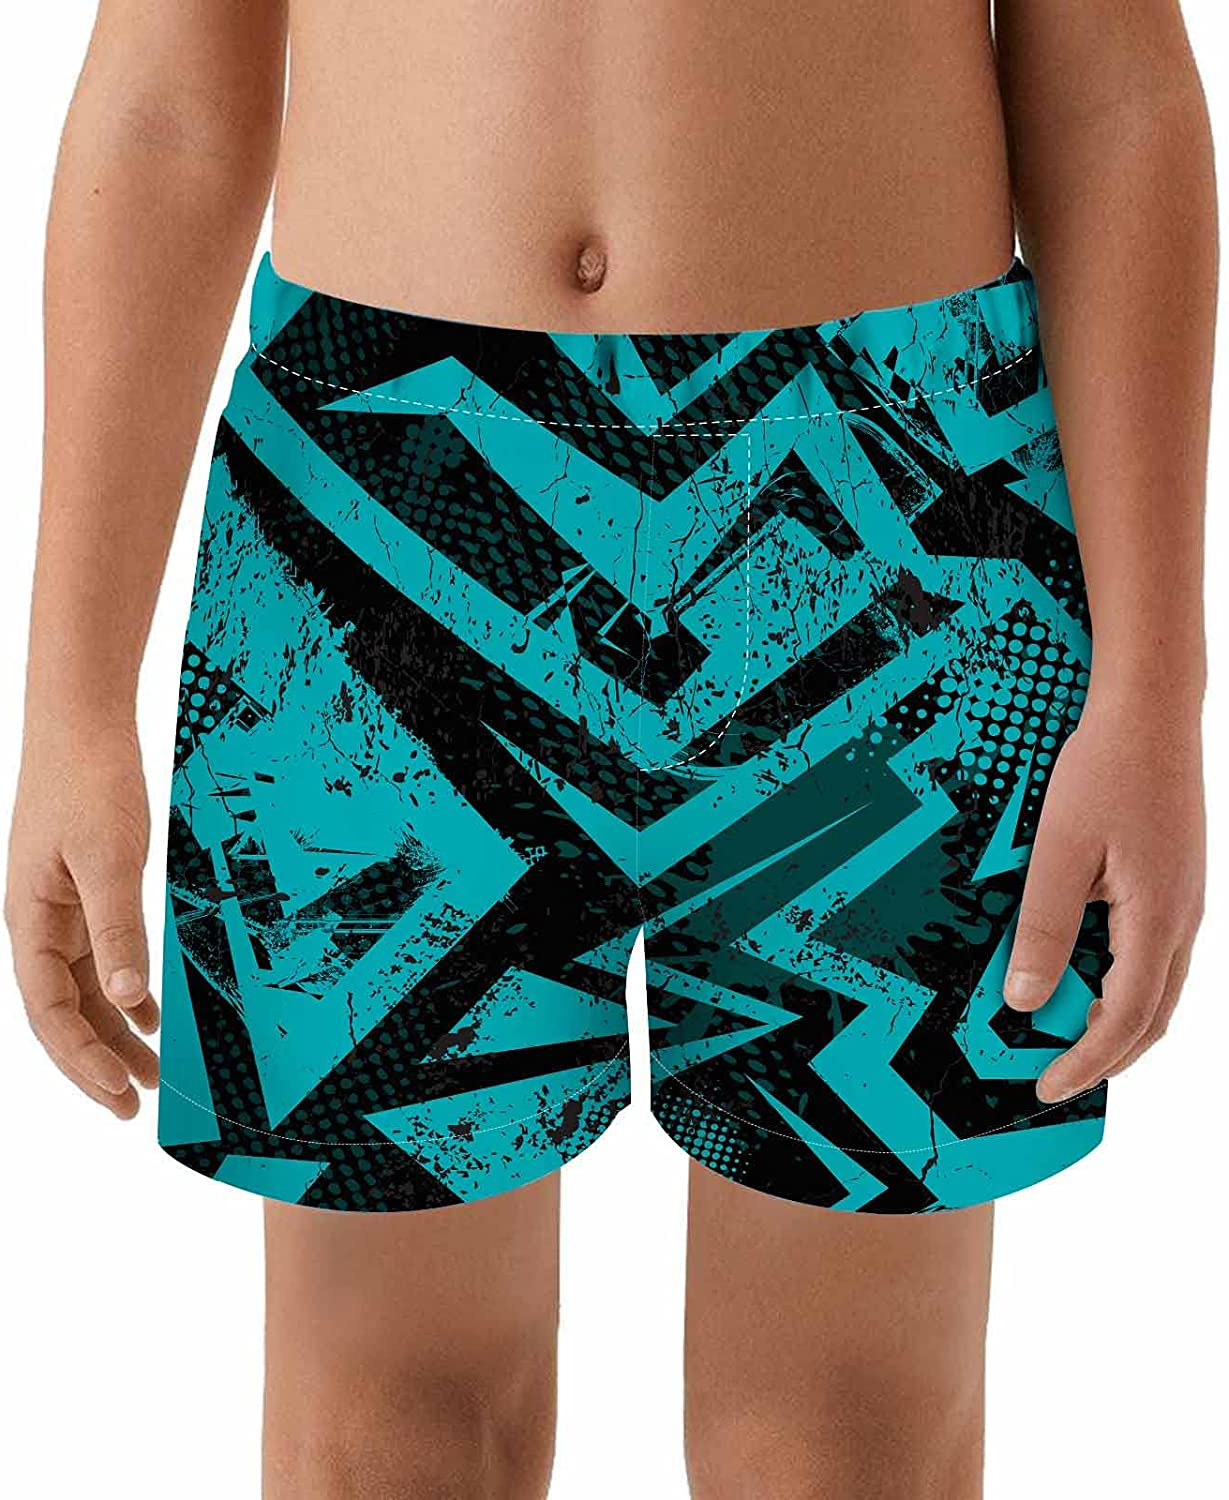 Beabes Color Direct stock discount Floral Easter Eggs Boys S Swim Trunks Bathing Suits Popular brand in the world